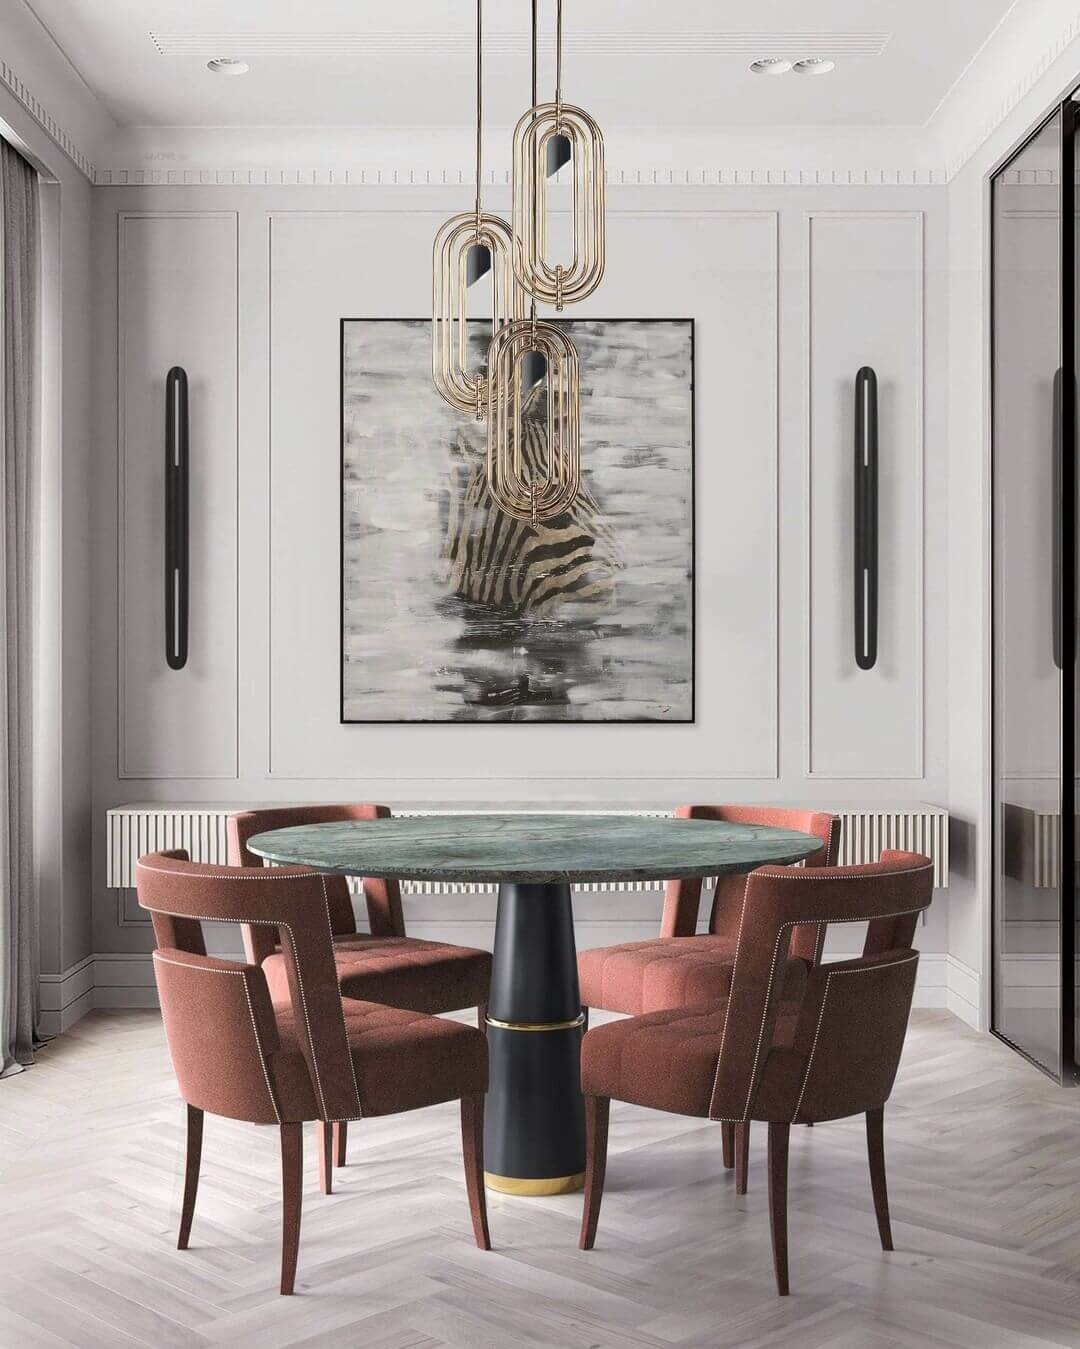 Dining Chairs and Kitchen Stools: Modern Chairs Fierce Design & Decor